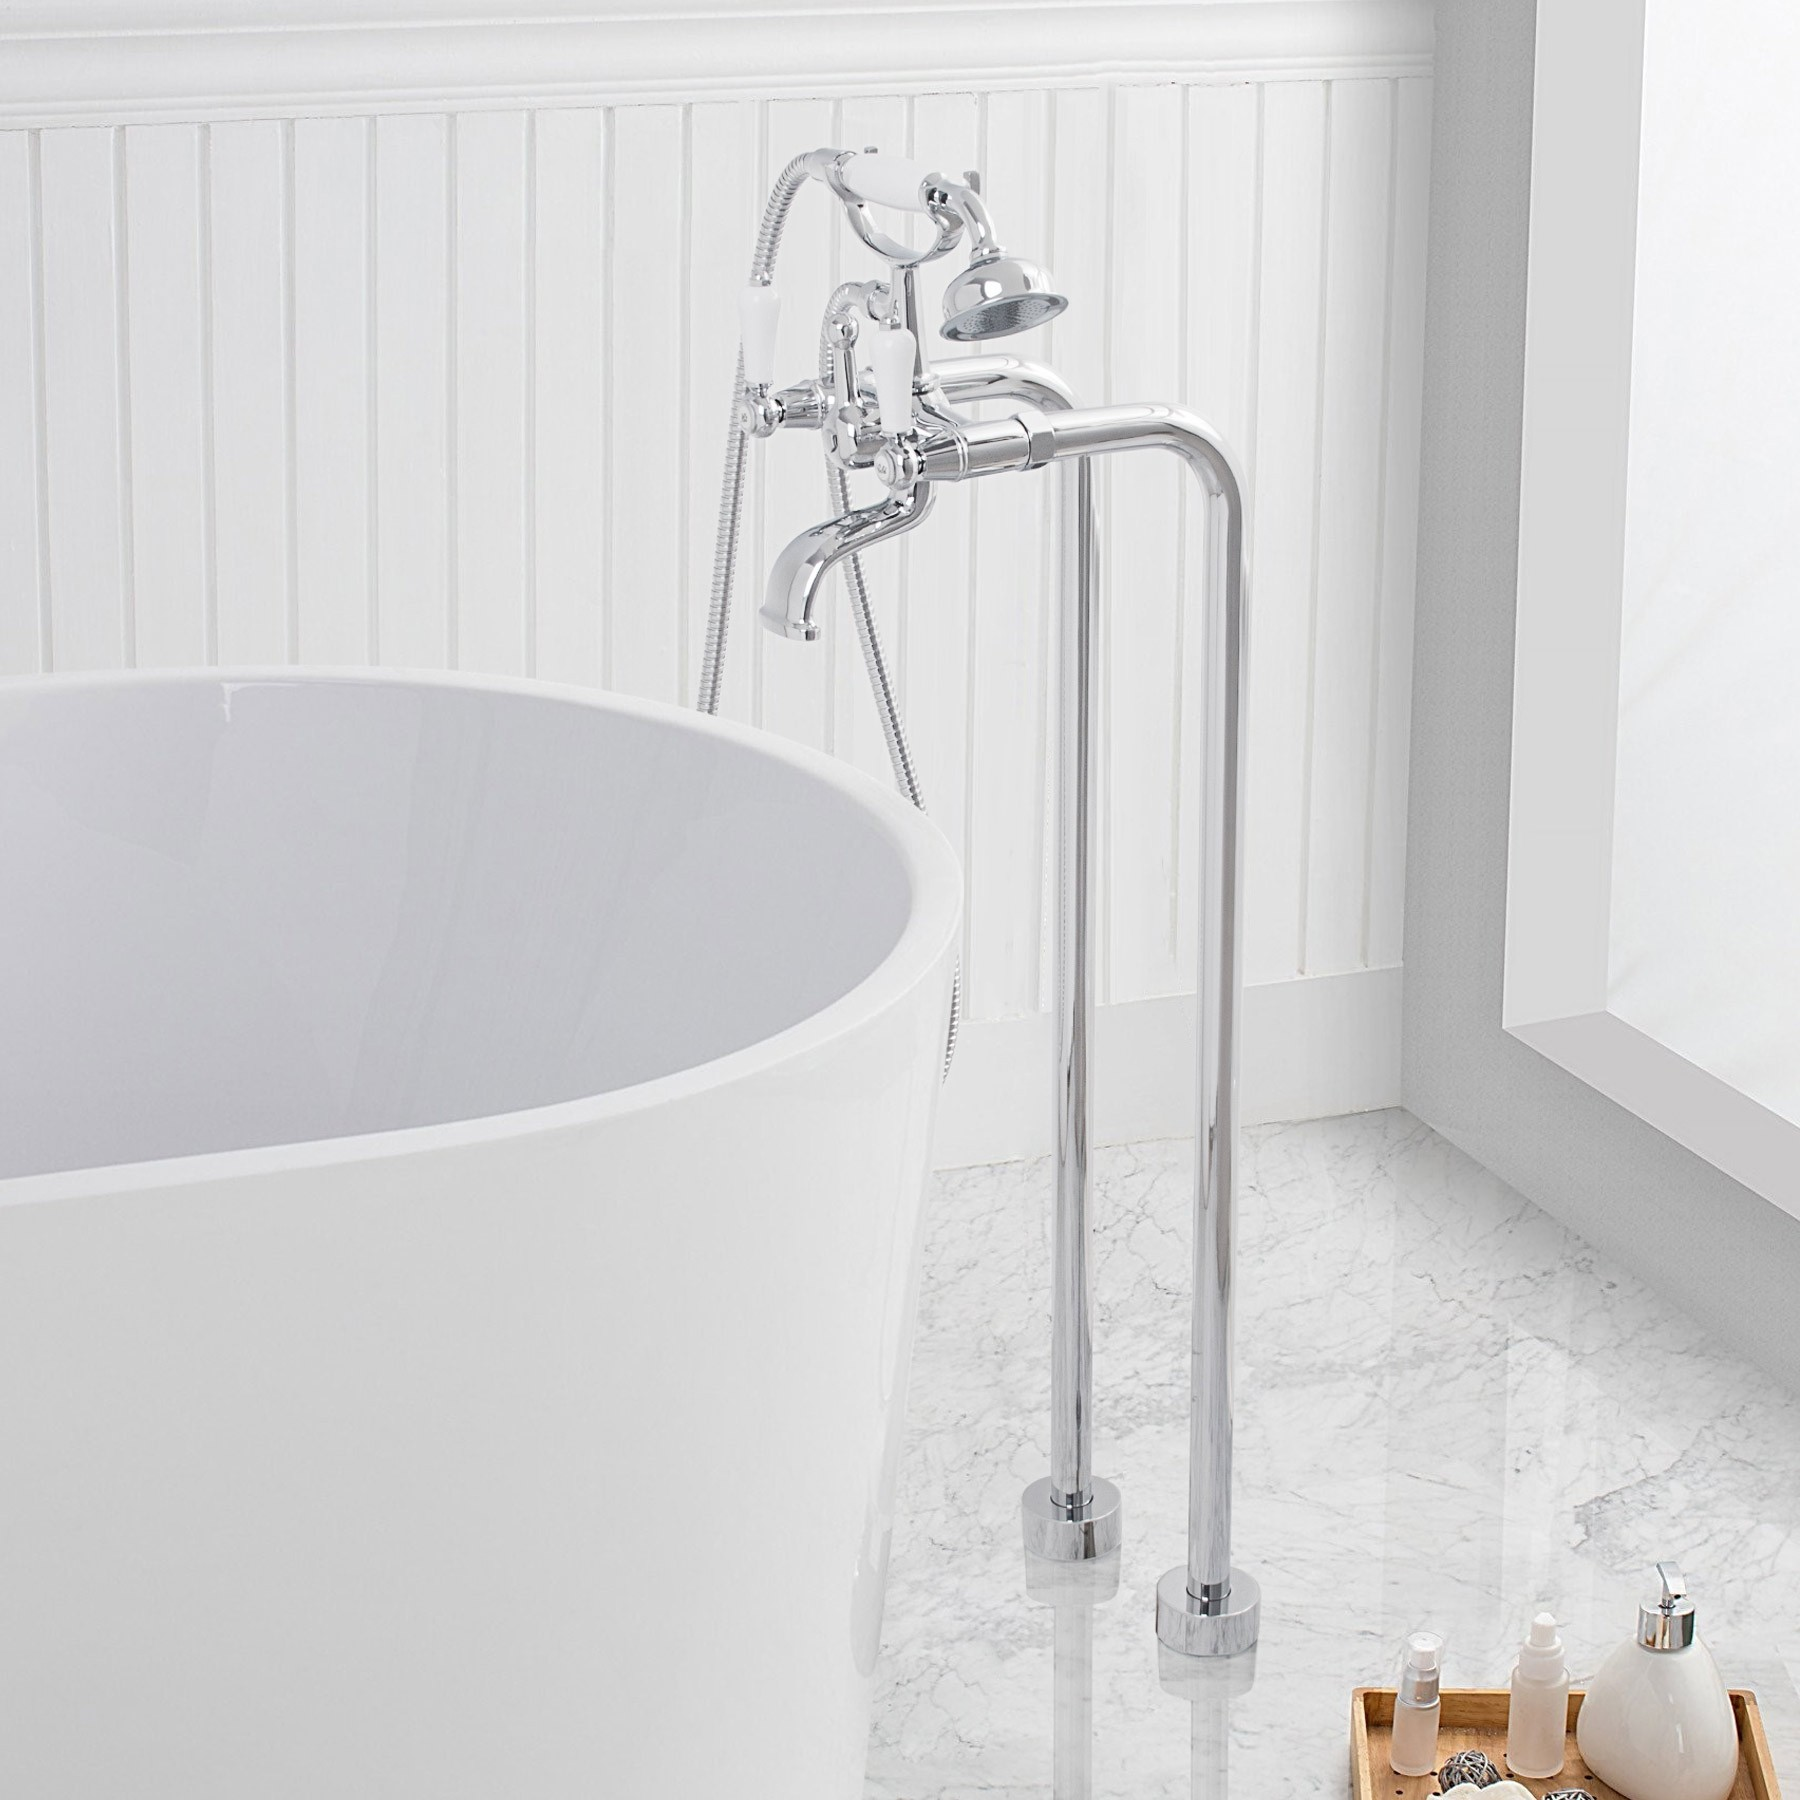 Inverness Freestanding Bathtub Faucet Set With Hand Shower, Polished Chrome